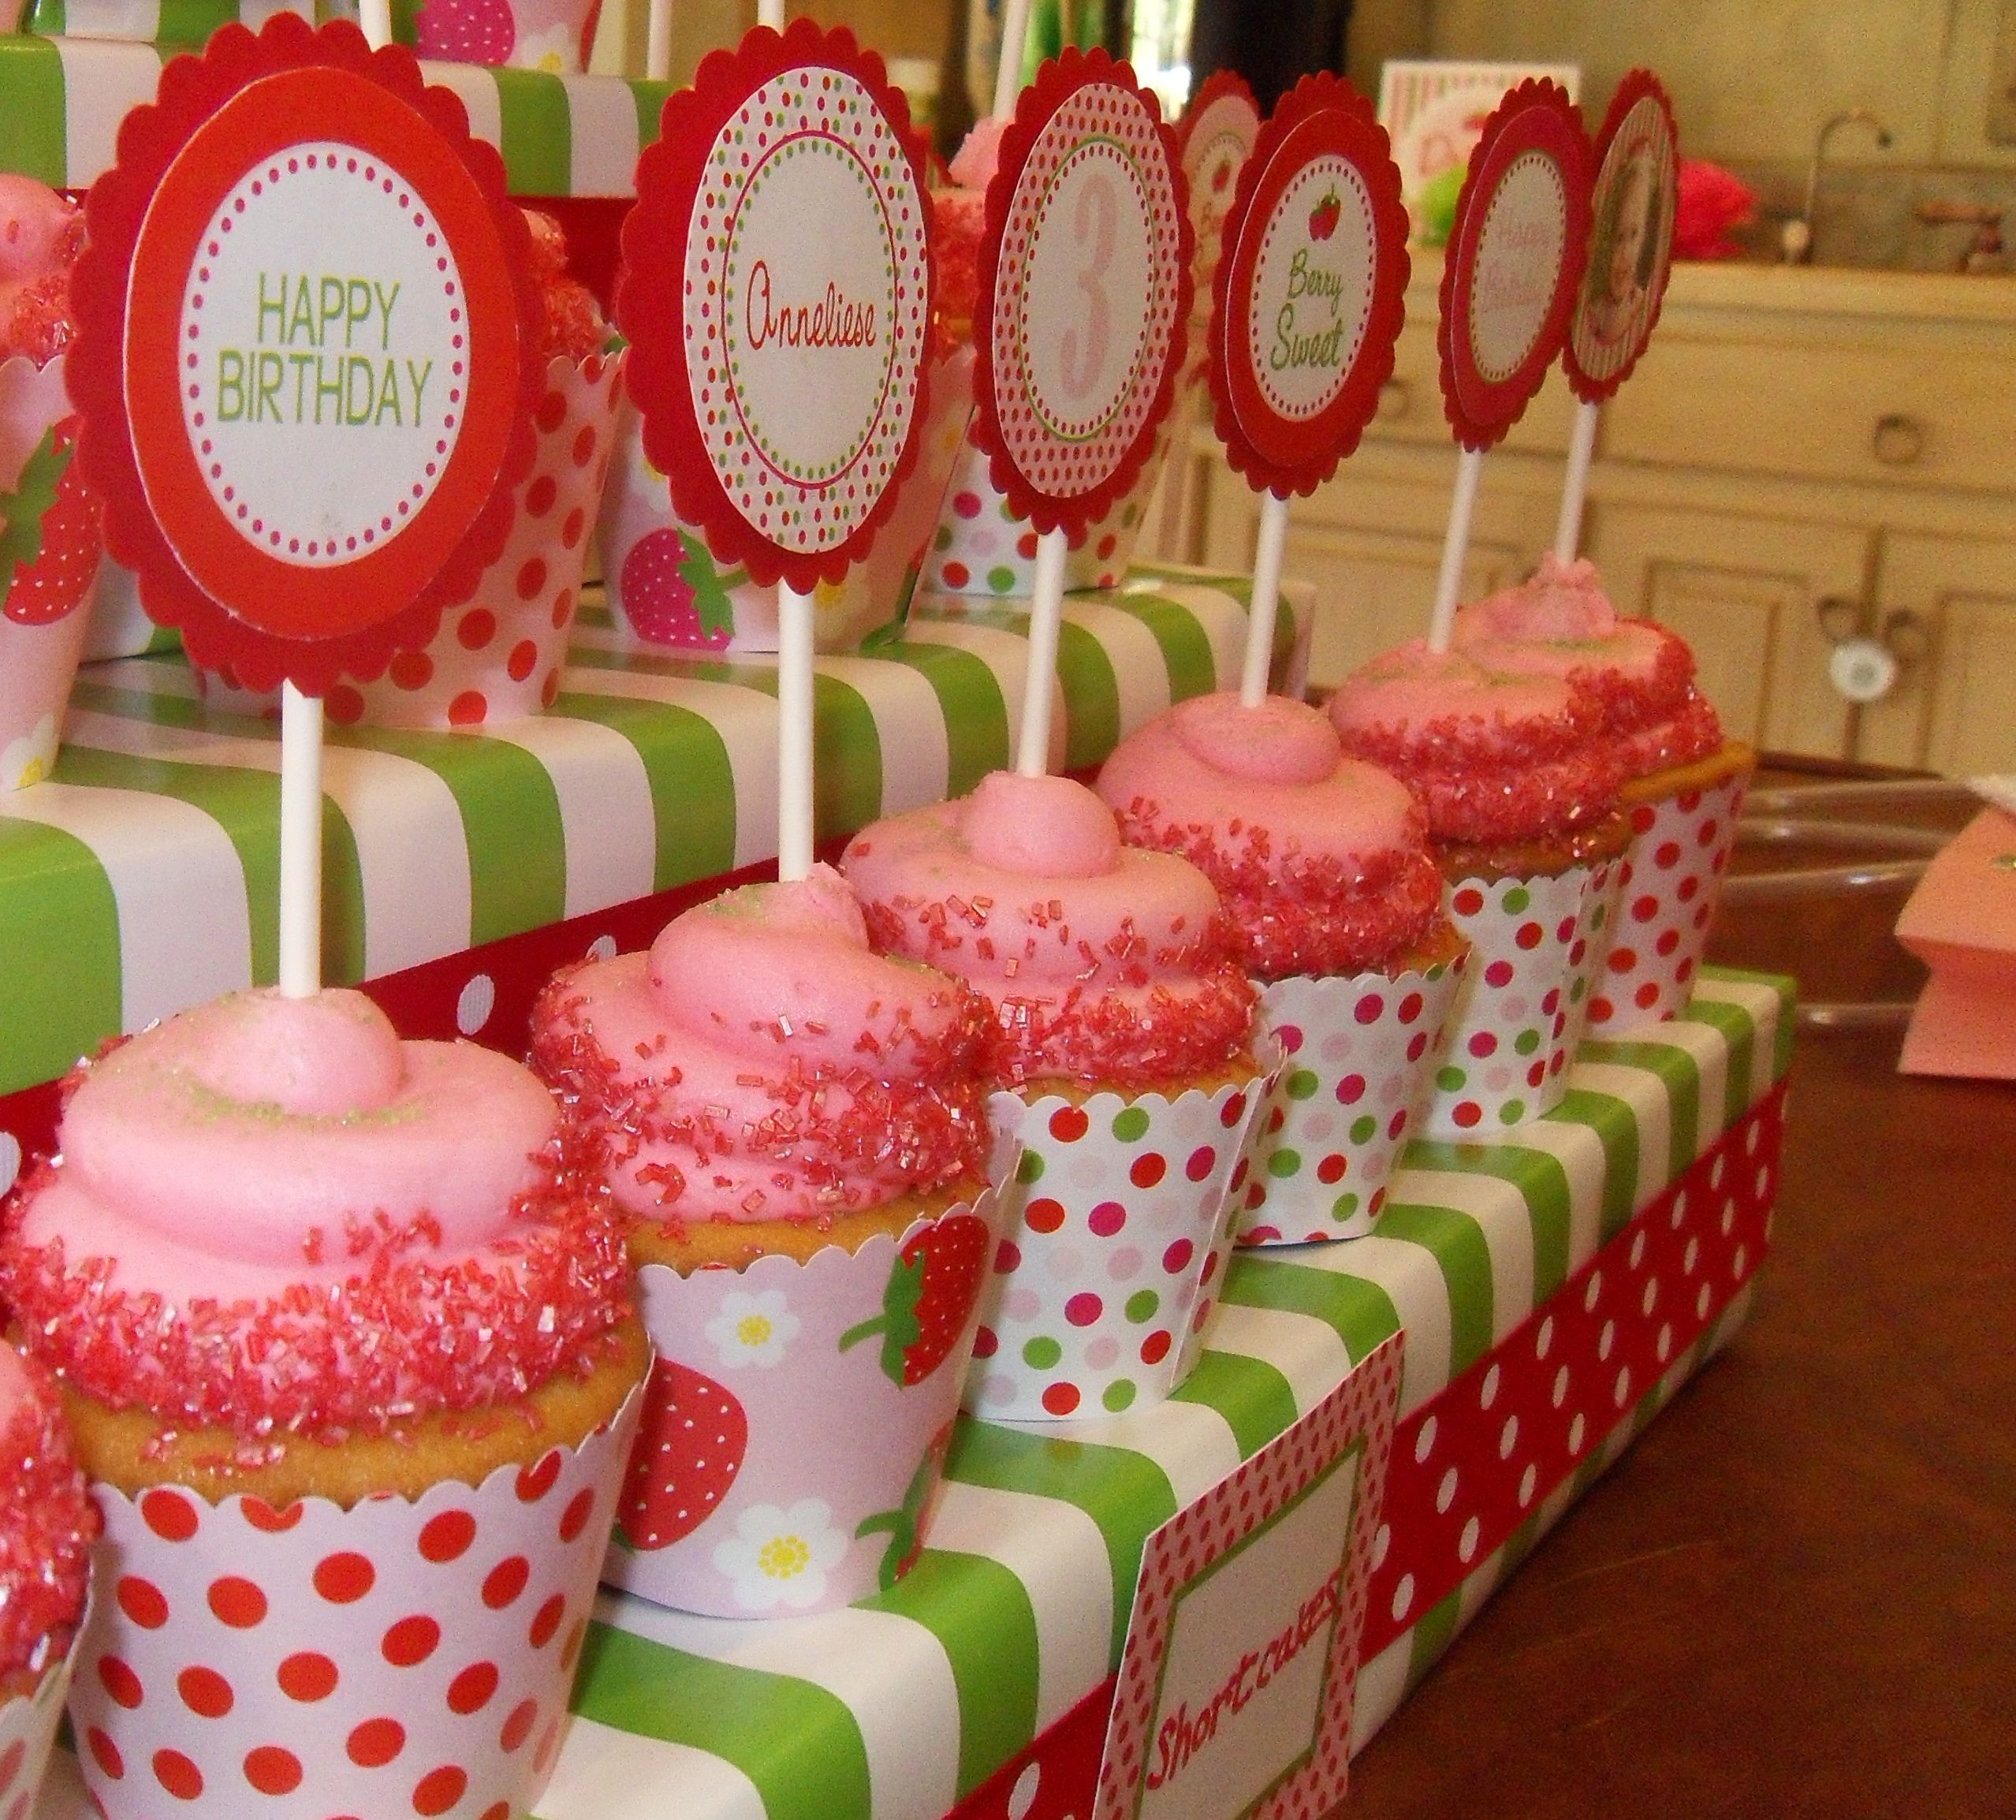 Best 25+ Strawberry shortcake birthday ideas on Pinterest ...